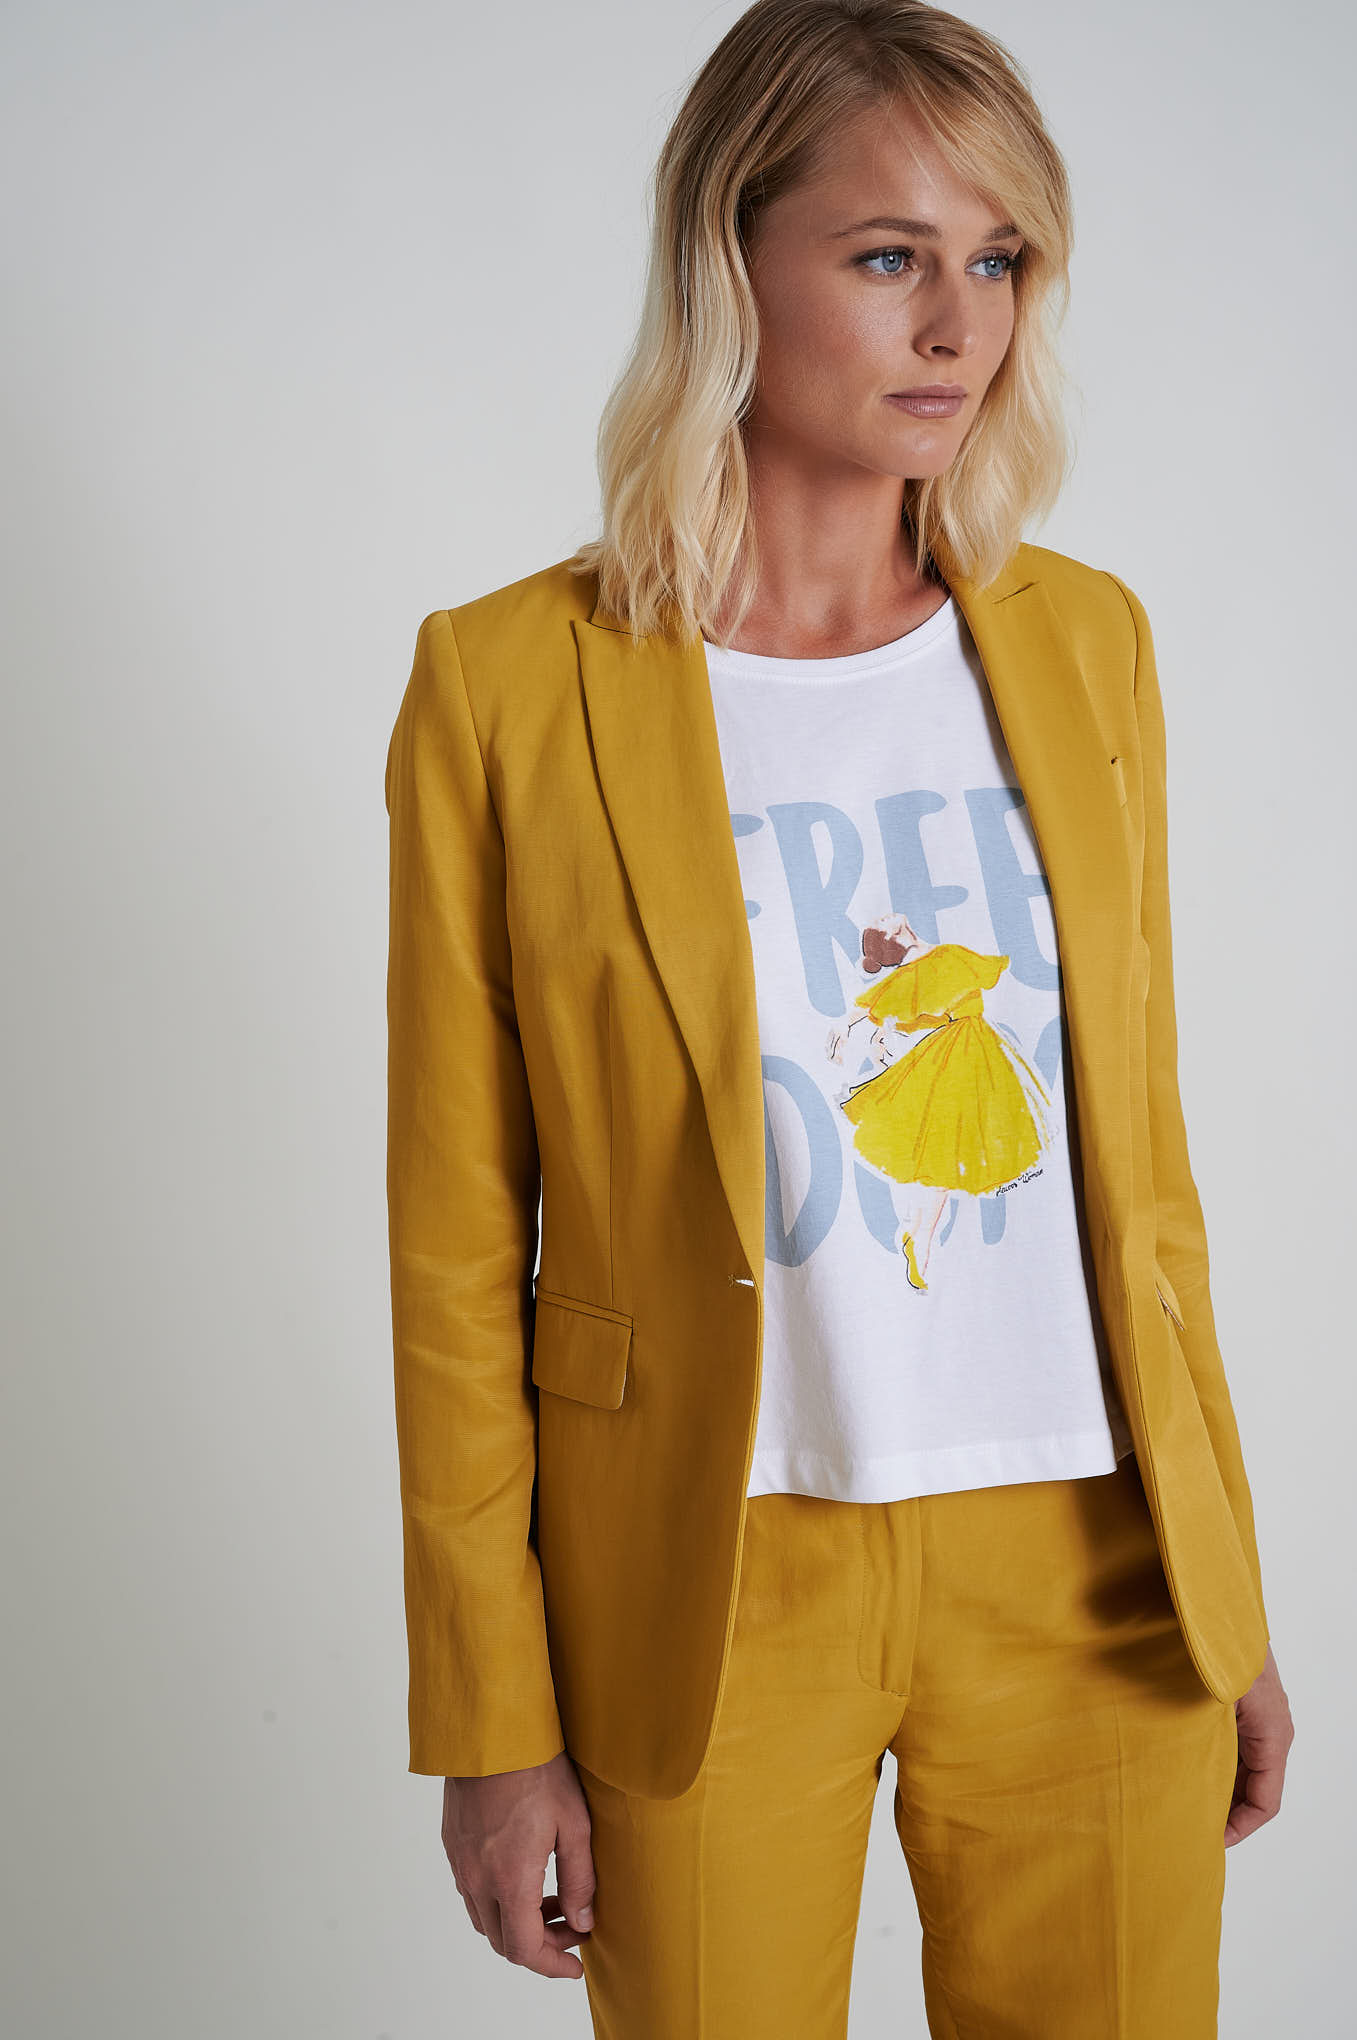 Blazer Yellow Formal Woman